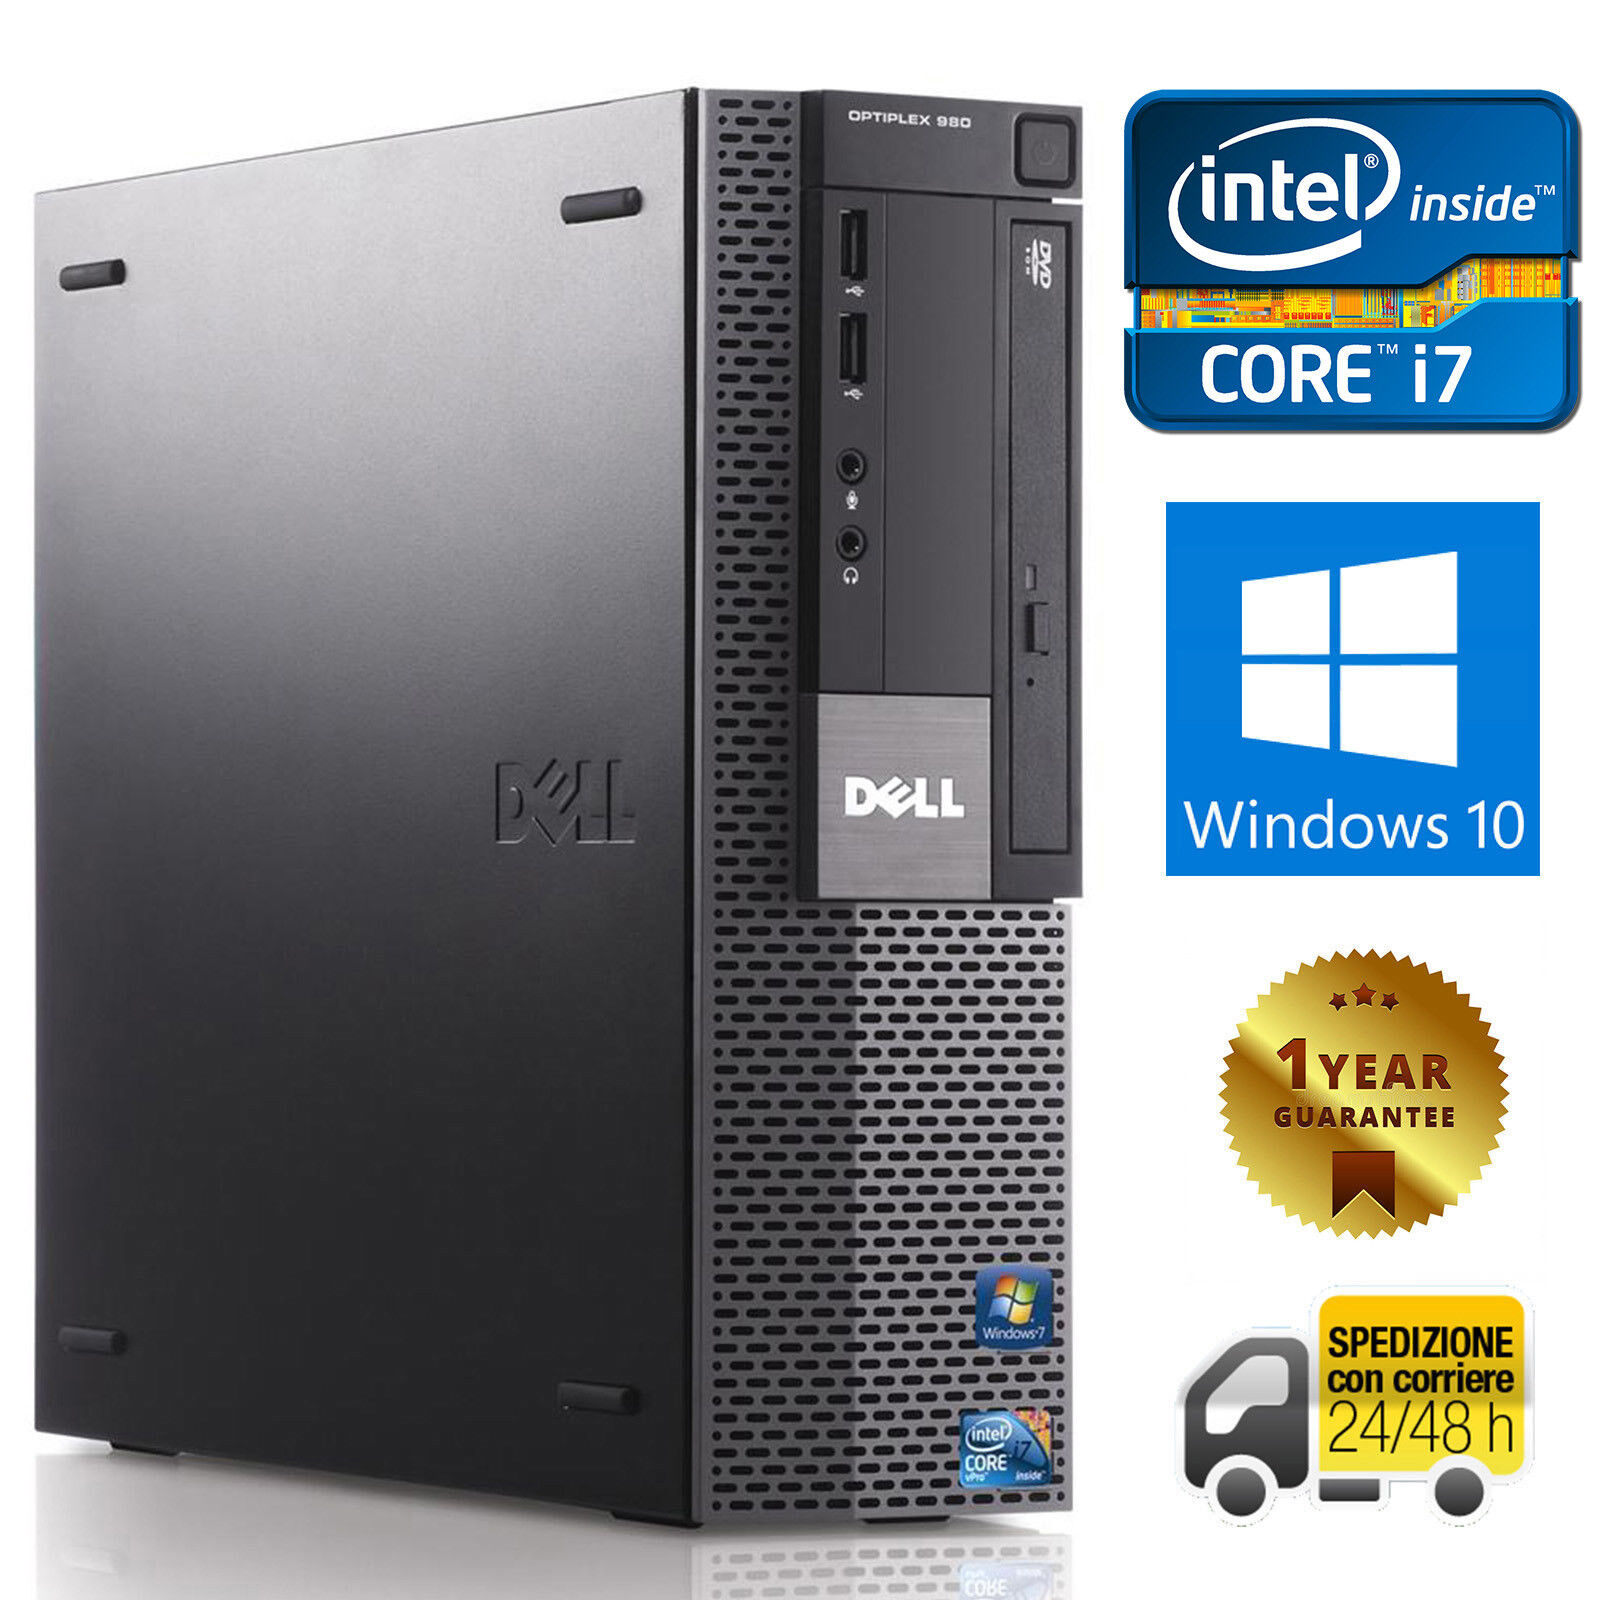 PC COMPUTER DESKTOP RICONDIZIONATO DELL 980 QUAD CORE i7 8GB 250GB WINDOWS 10